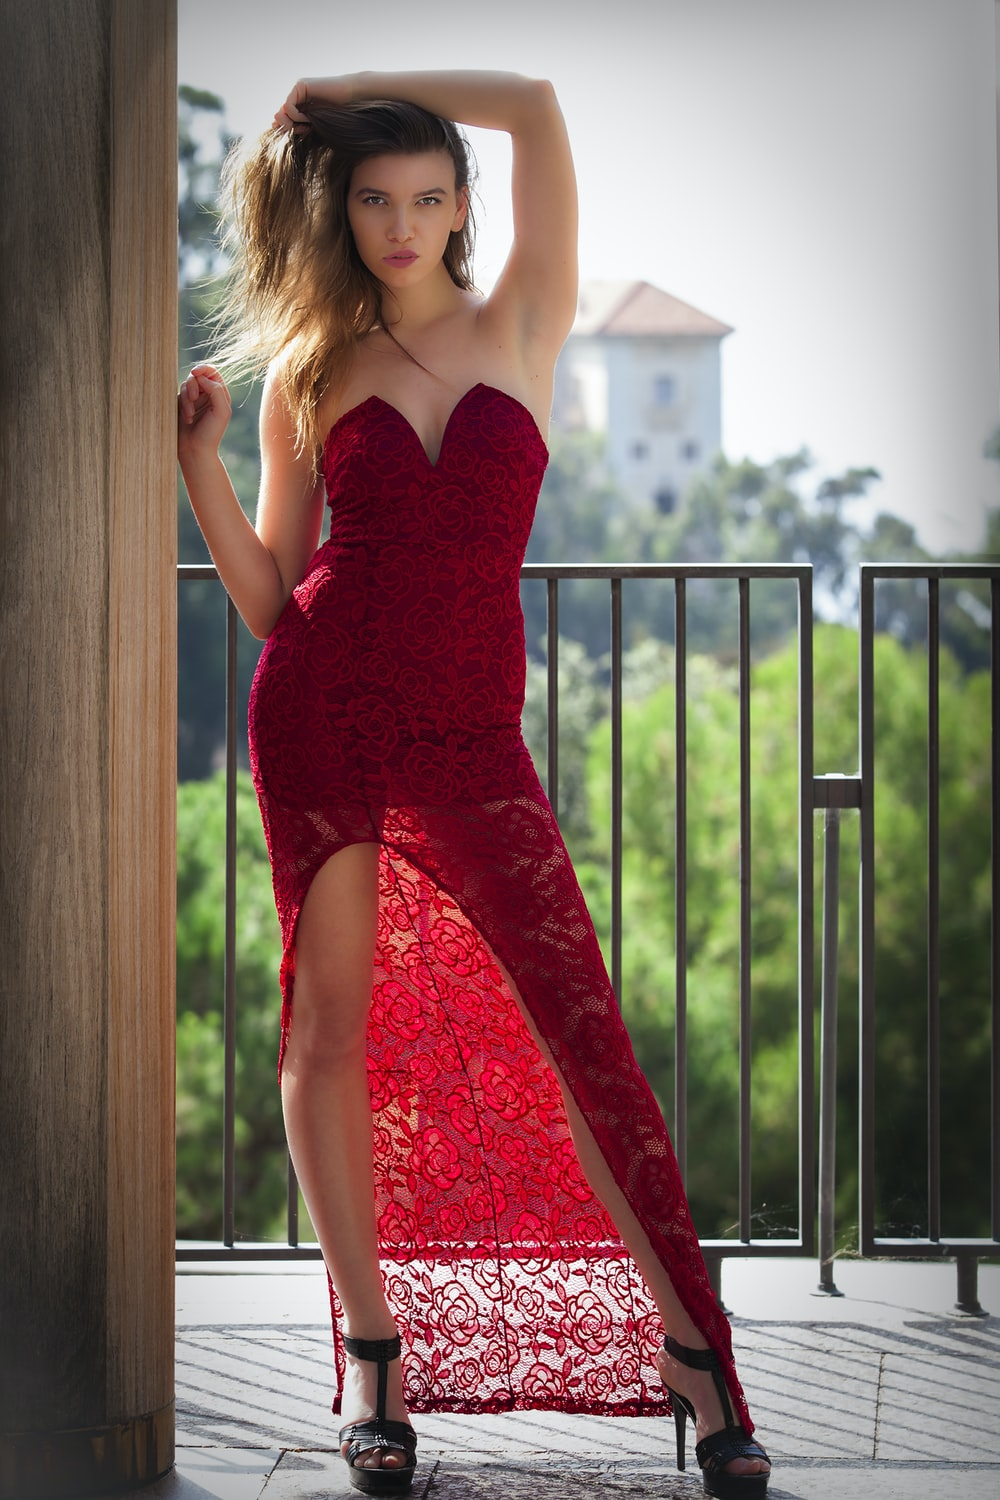 woman in red spaghetti strap dress standing near brown wooden fence during daytime